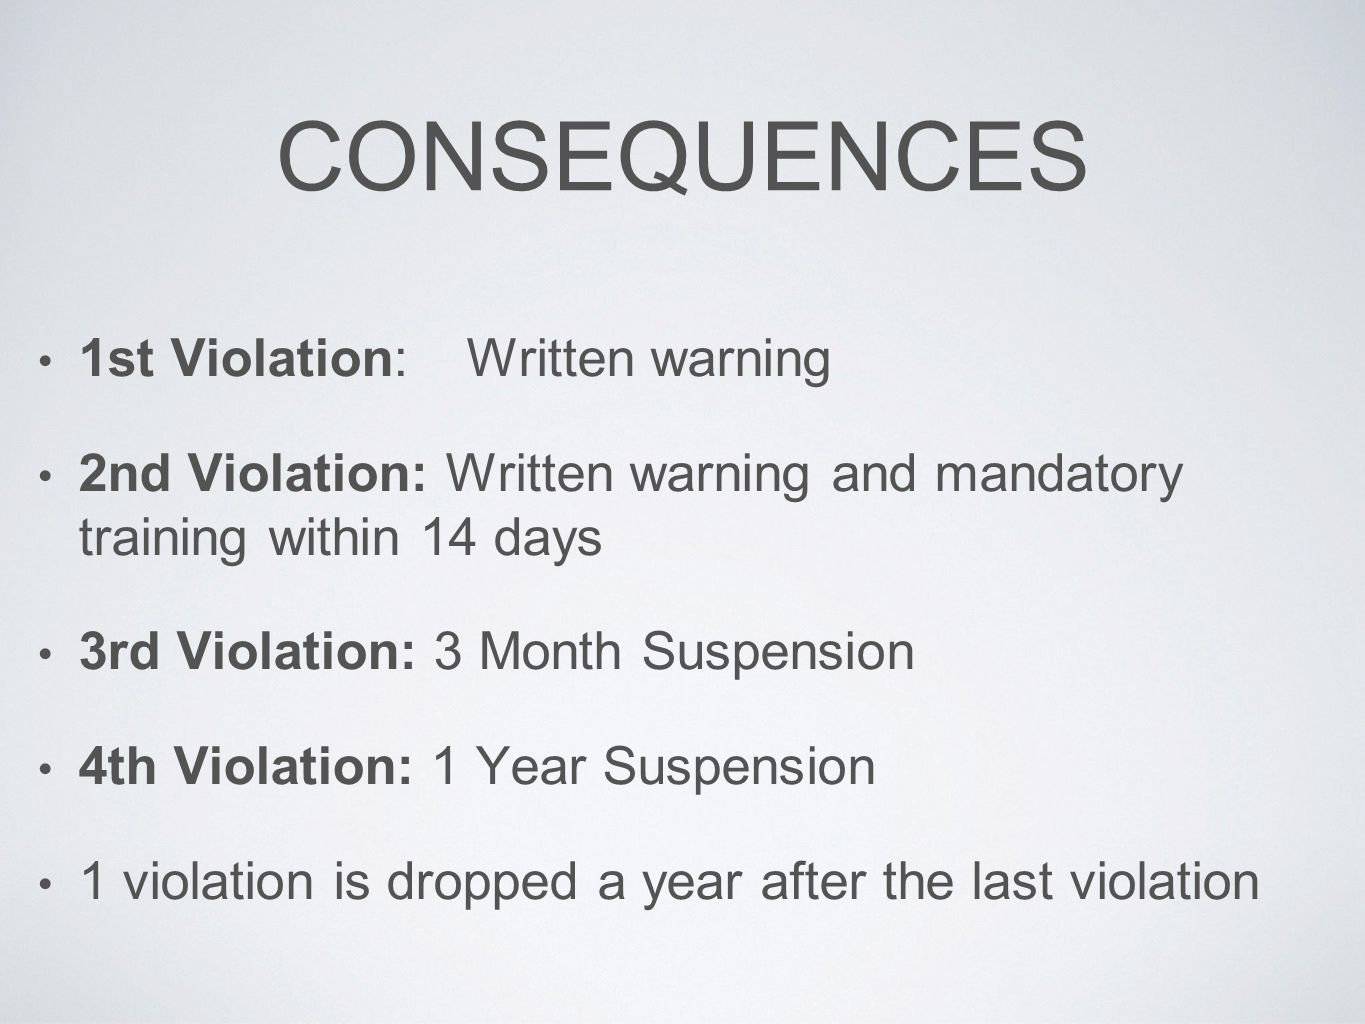 CONSEQUENCES 1st Violation:Written warning 2nd Violation: Written warning and mandatory training within 14 days 3rd Violation: 3 Month Suspension 4th